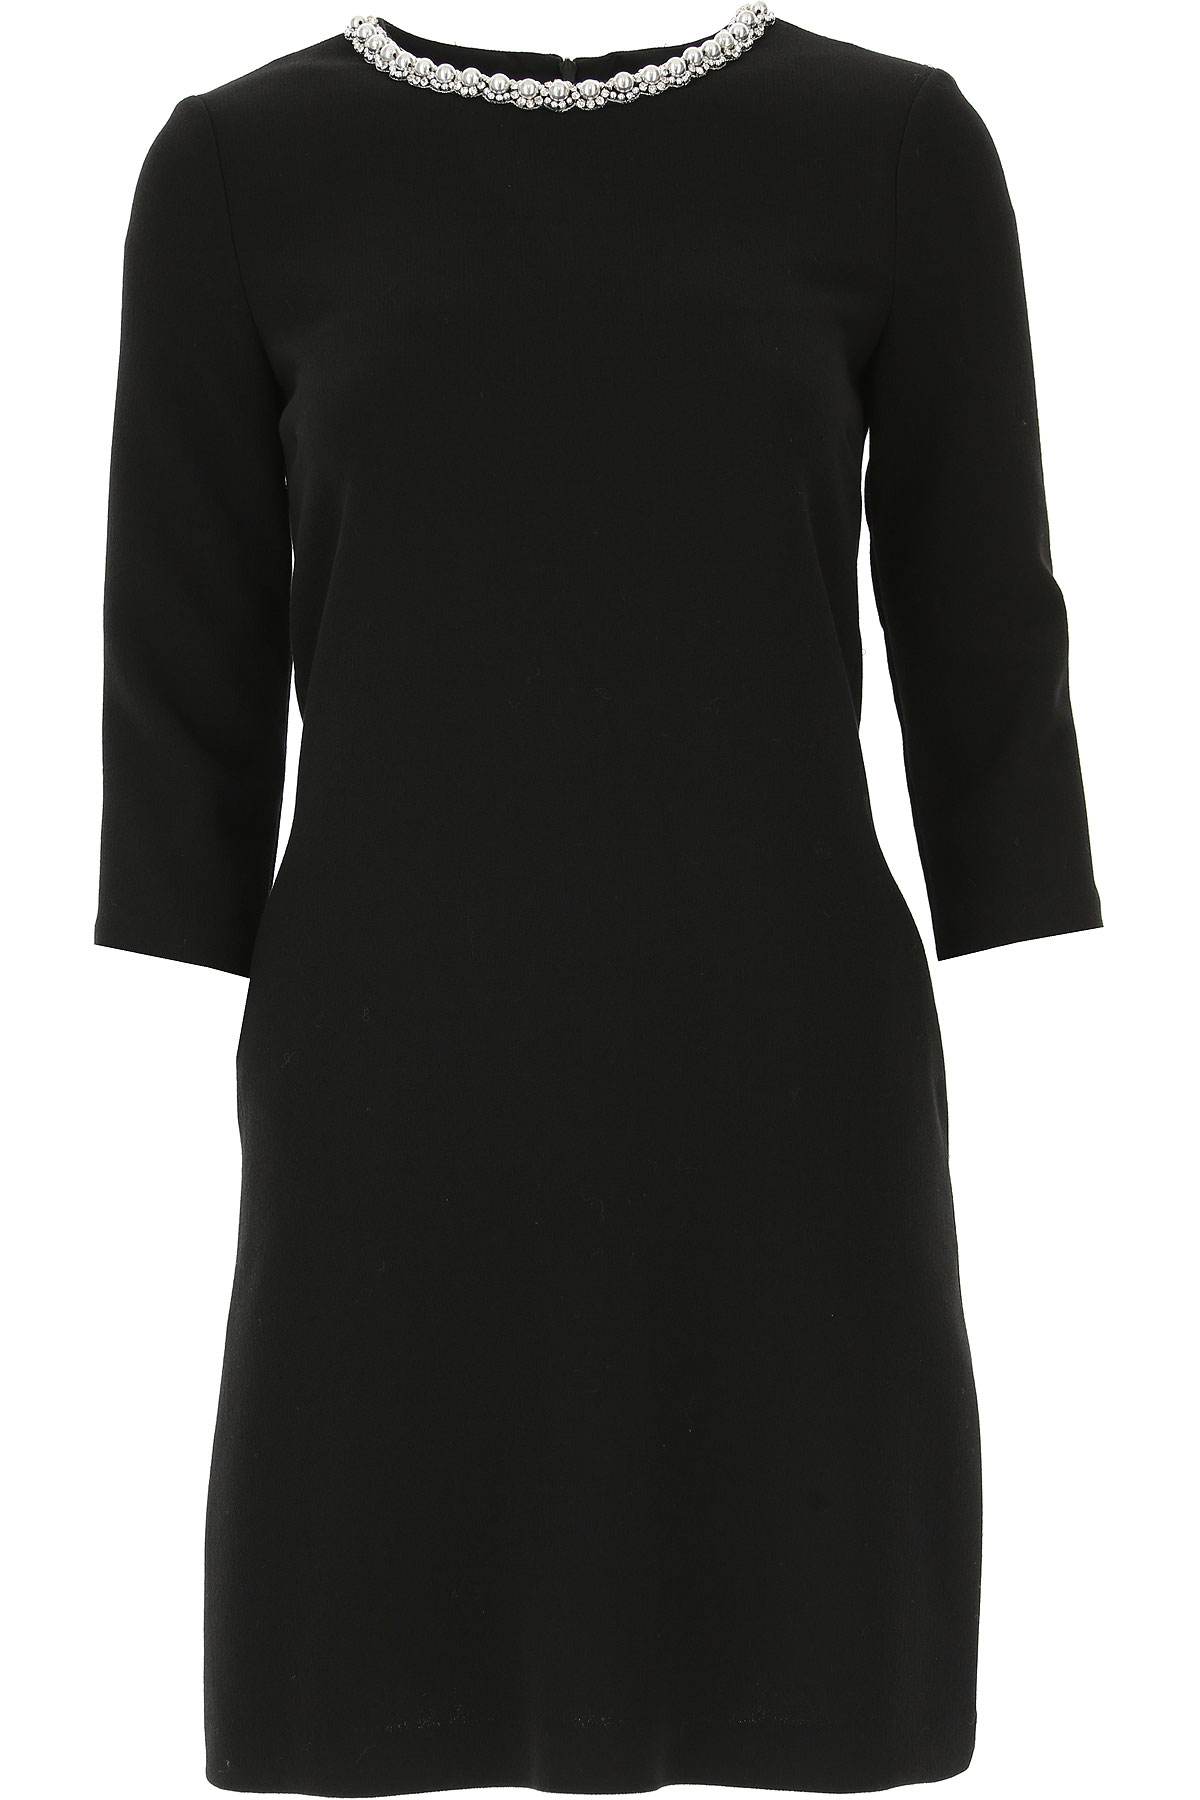 Image of Ermanno Scervino Dress for Women, Evening Cocktail Party, Black, Viscose, 2017, USA 6 -- IT 40 USA 8 -- IT 42 USA 10 -- IT 44